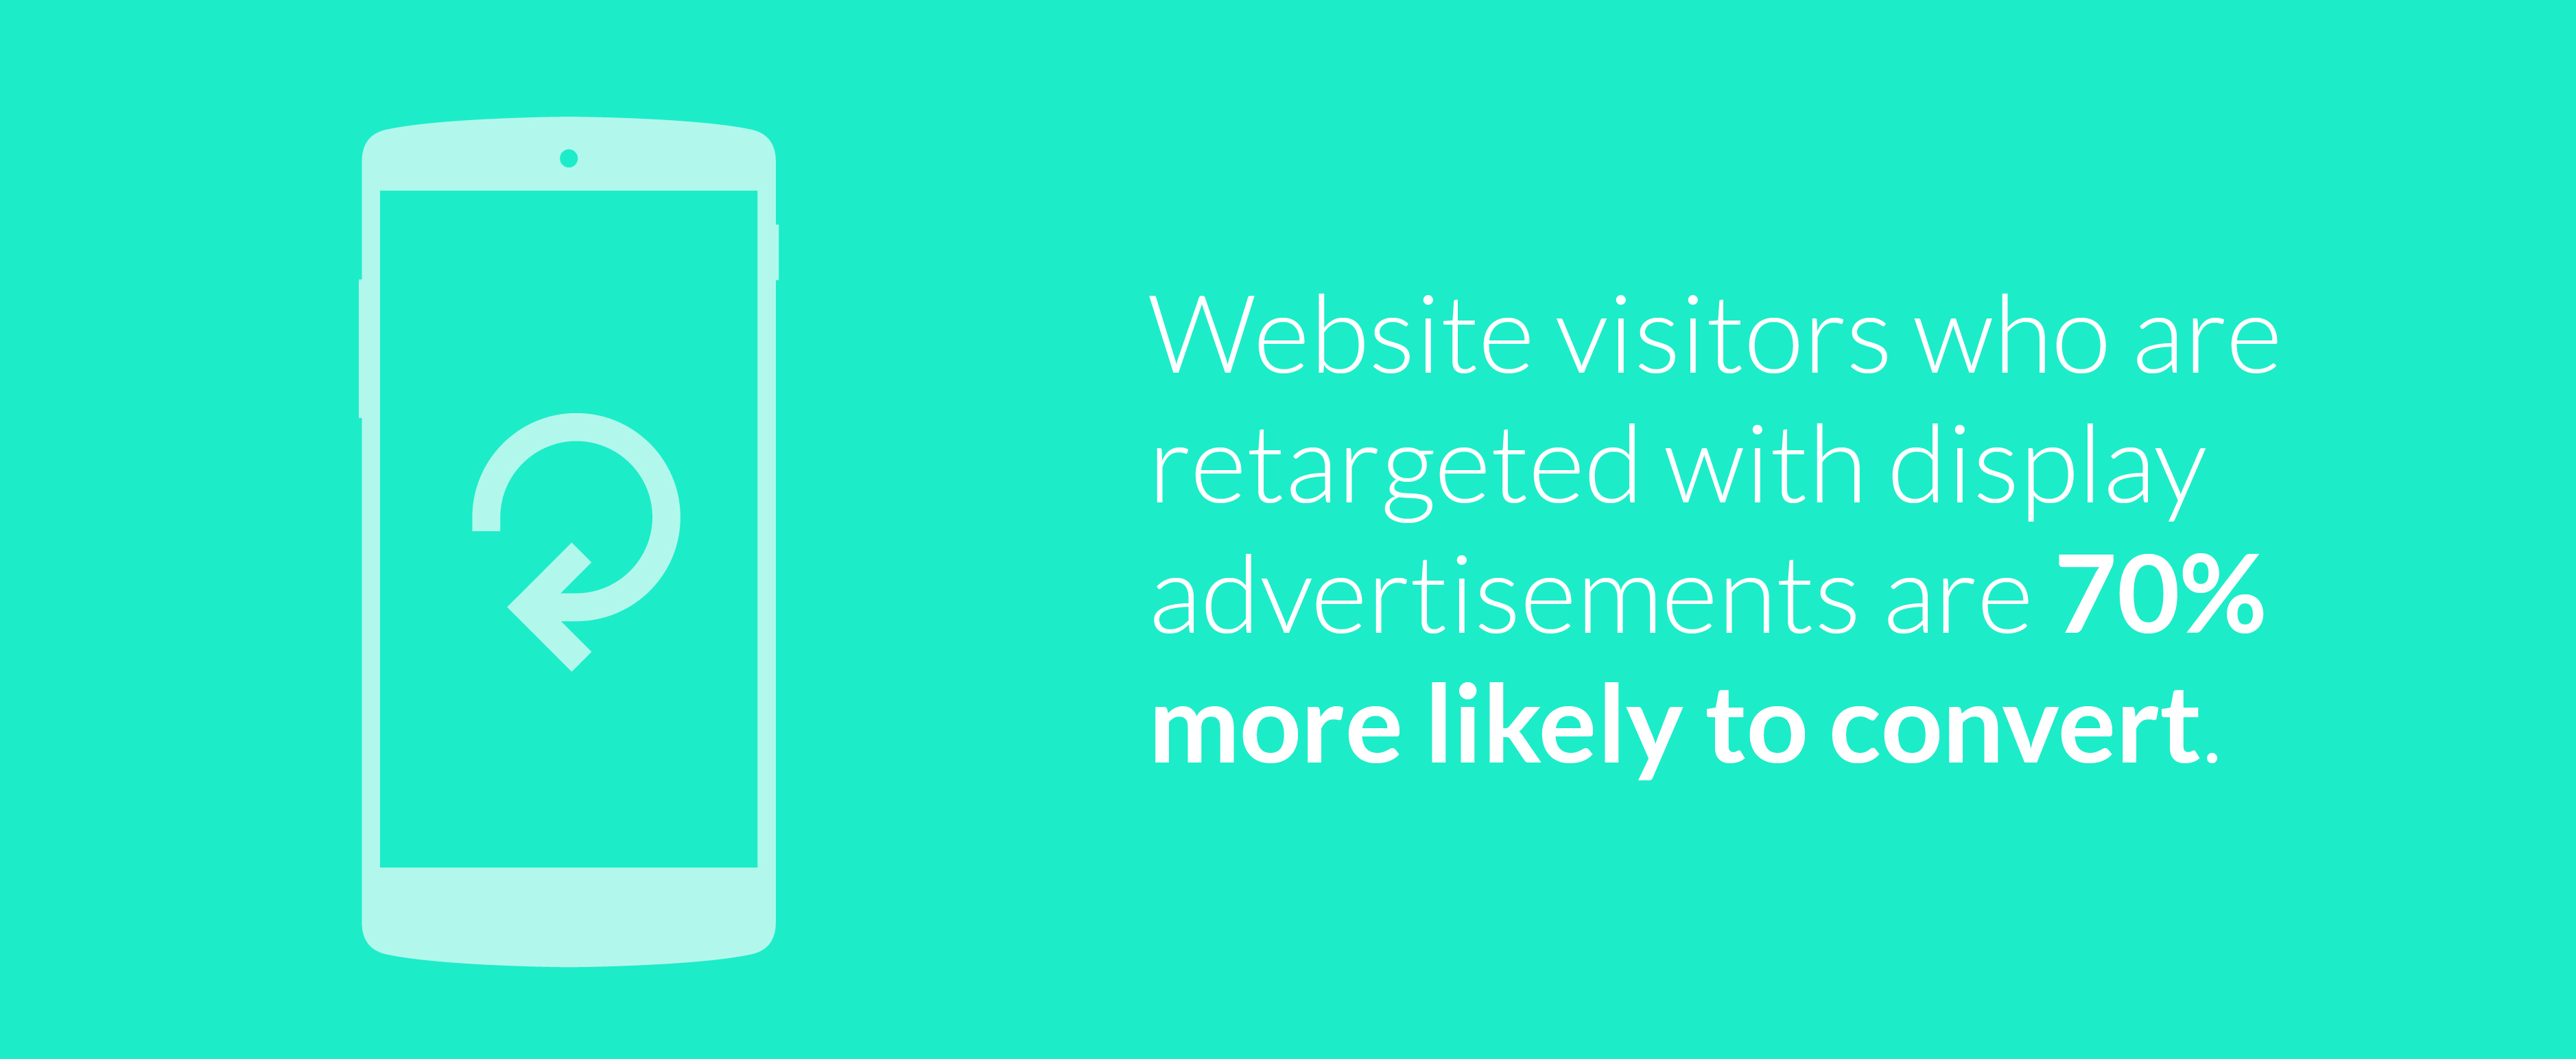 website visitors who are retargeted with display ads are 70 percent more likely to convert